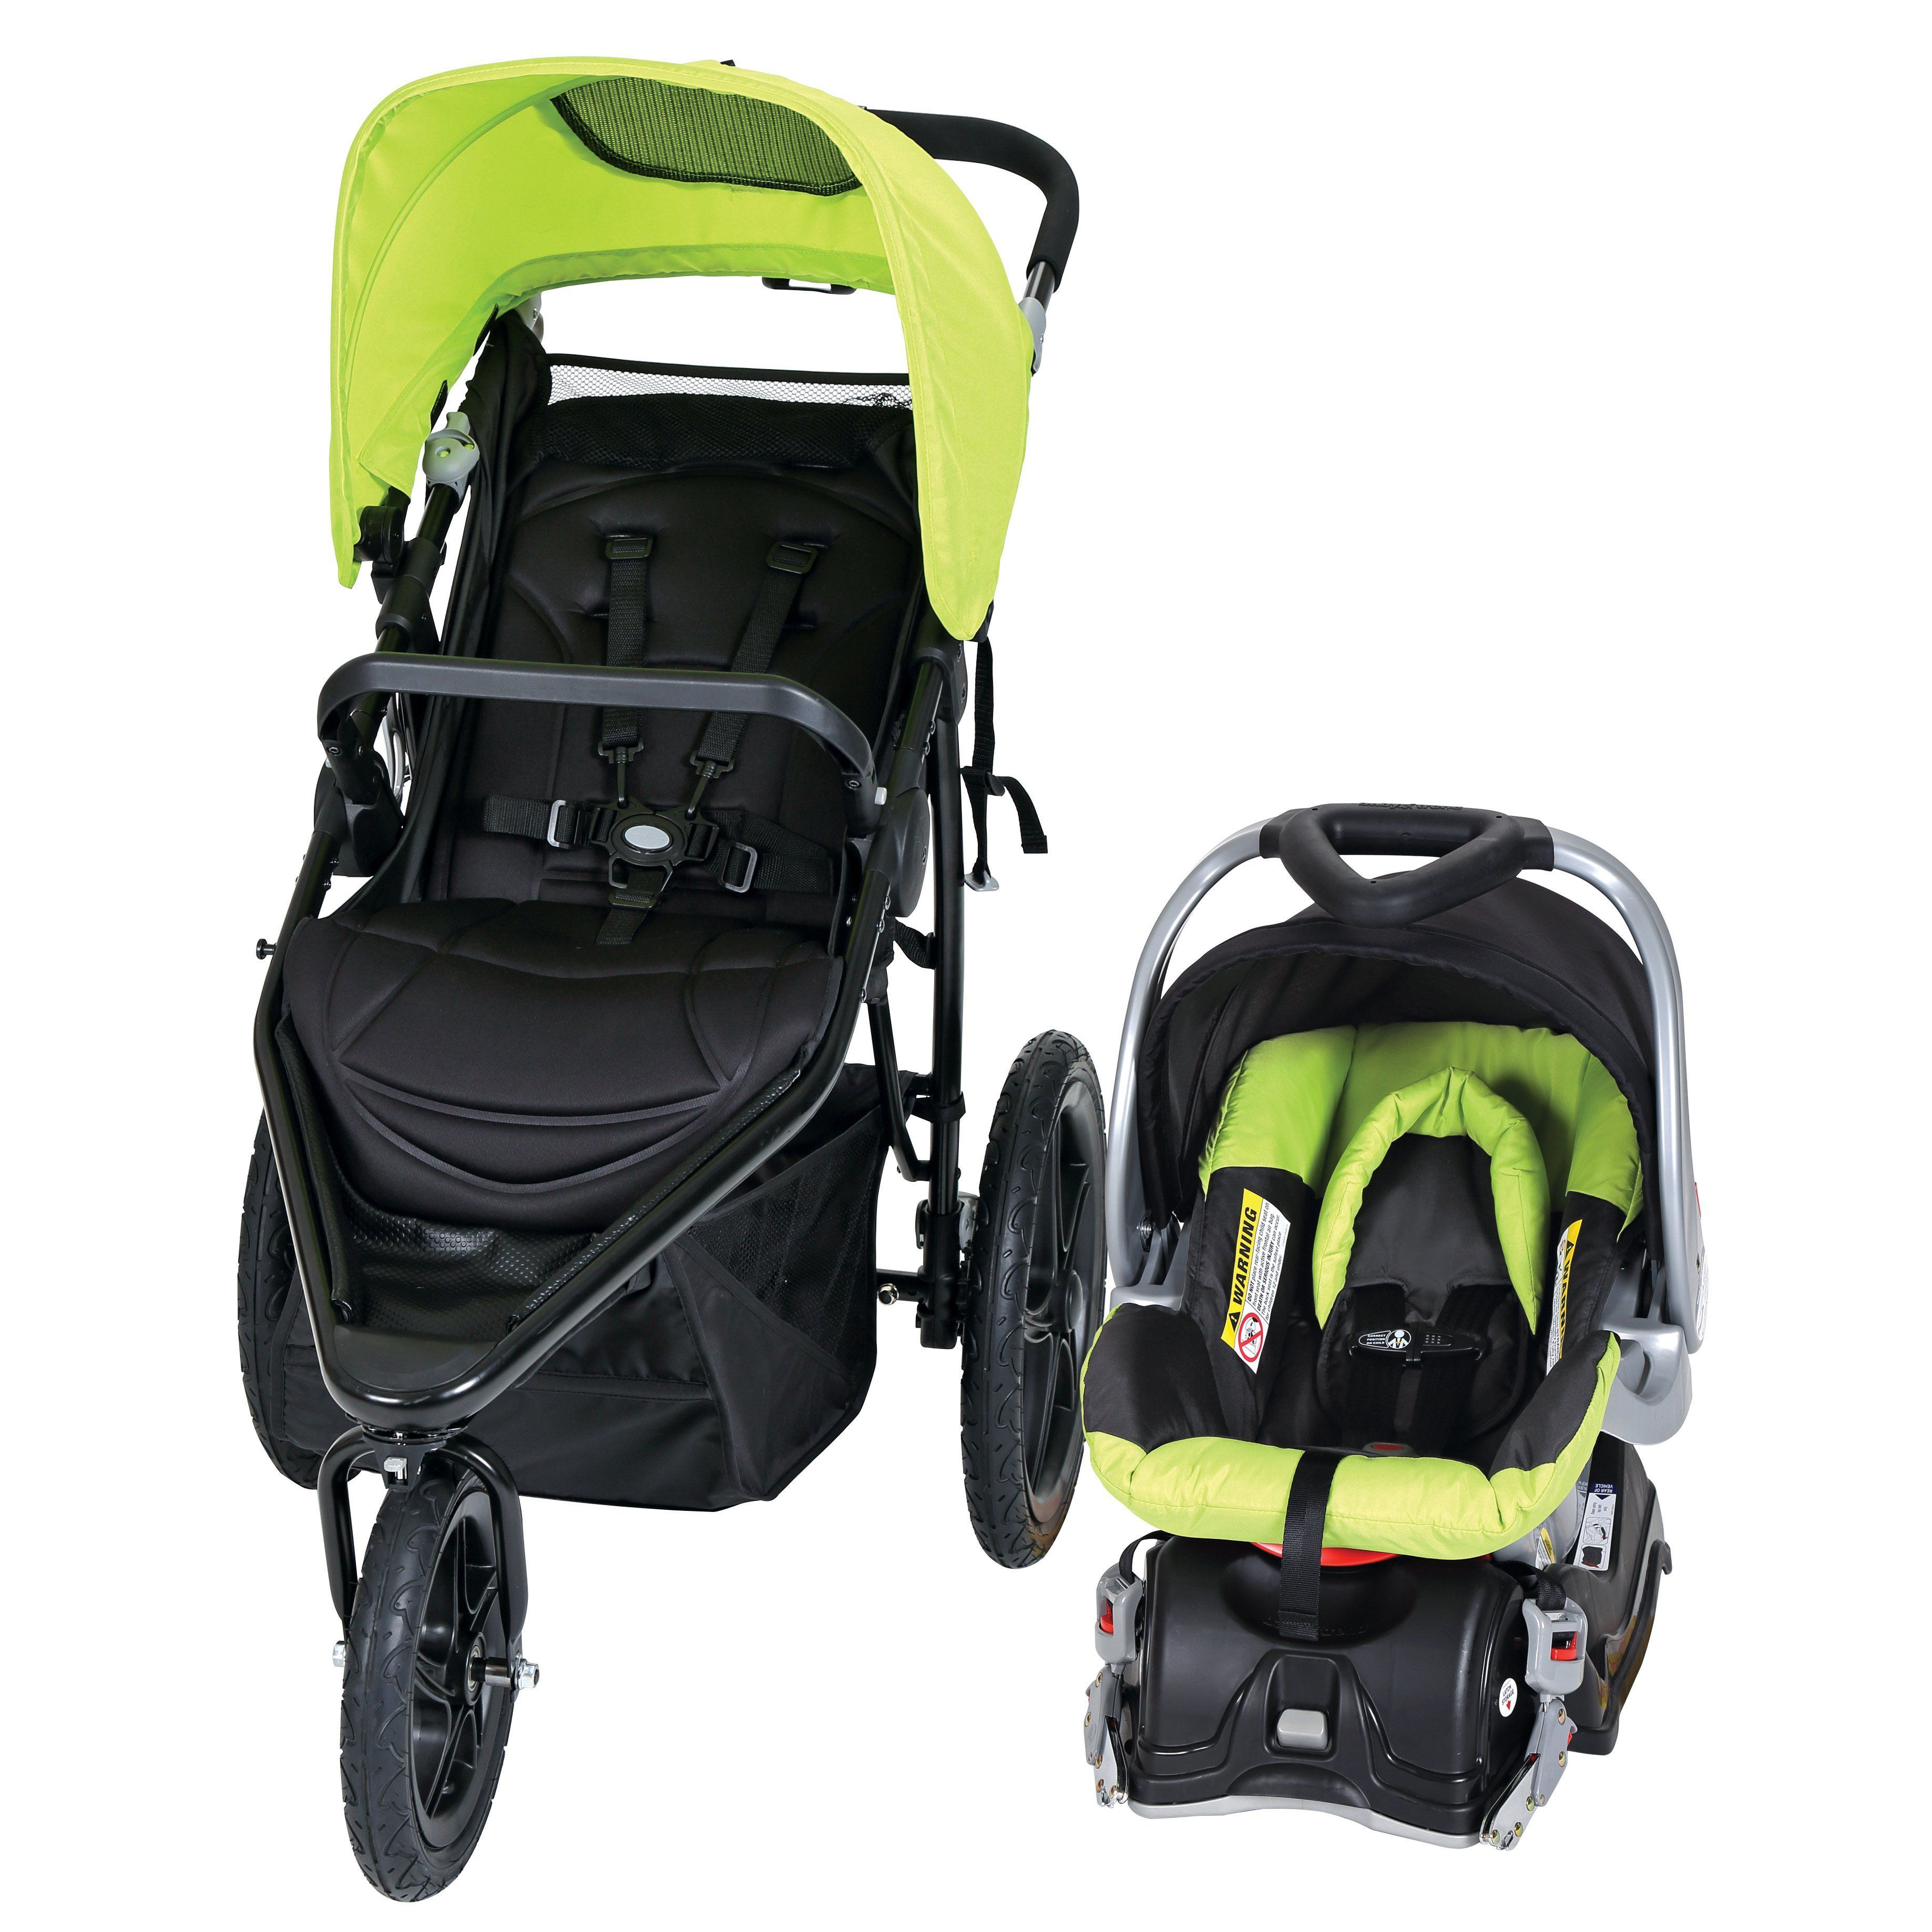 Baby Trend Stealth Jogger Travel System Willow TJ30442